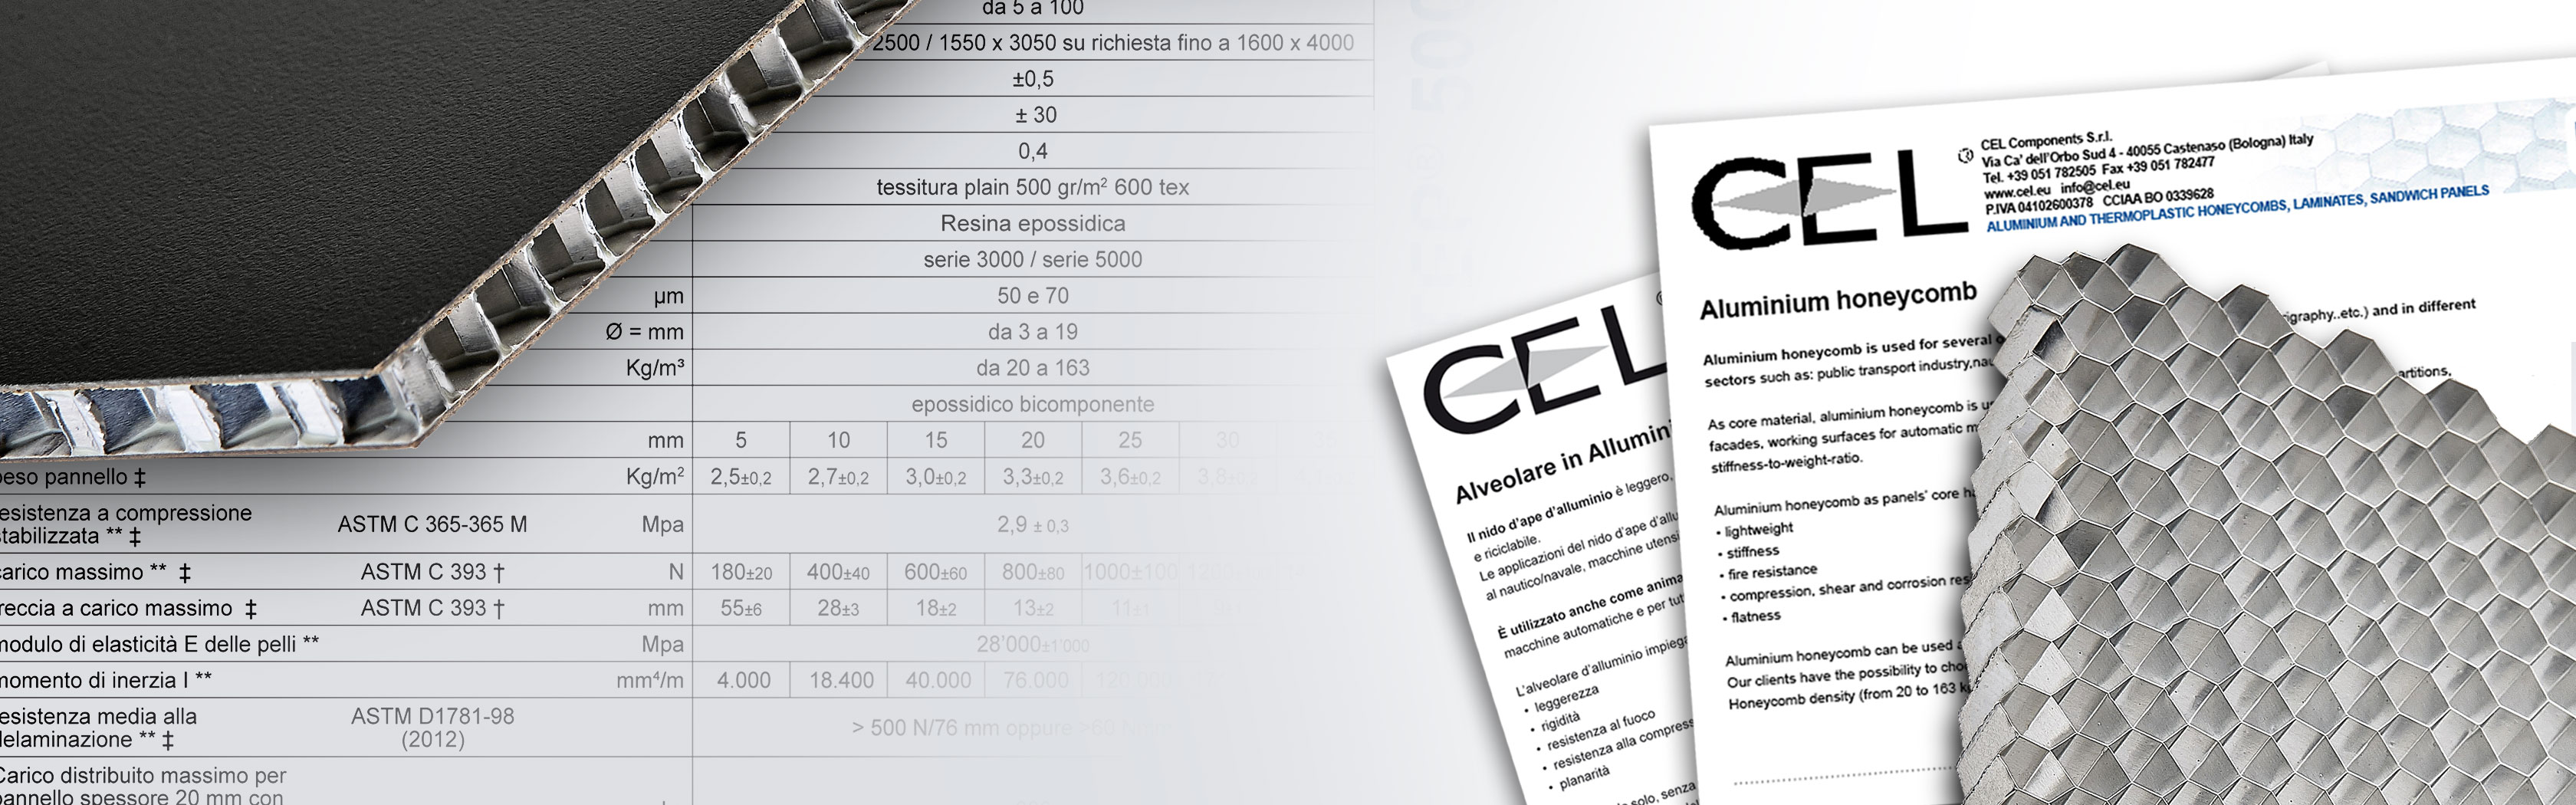 Cel components technical documentation, datasheets for its wide range of honeycomb panels.